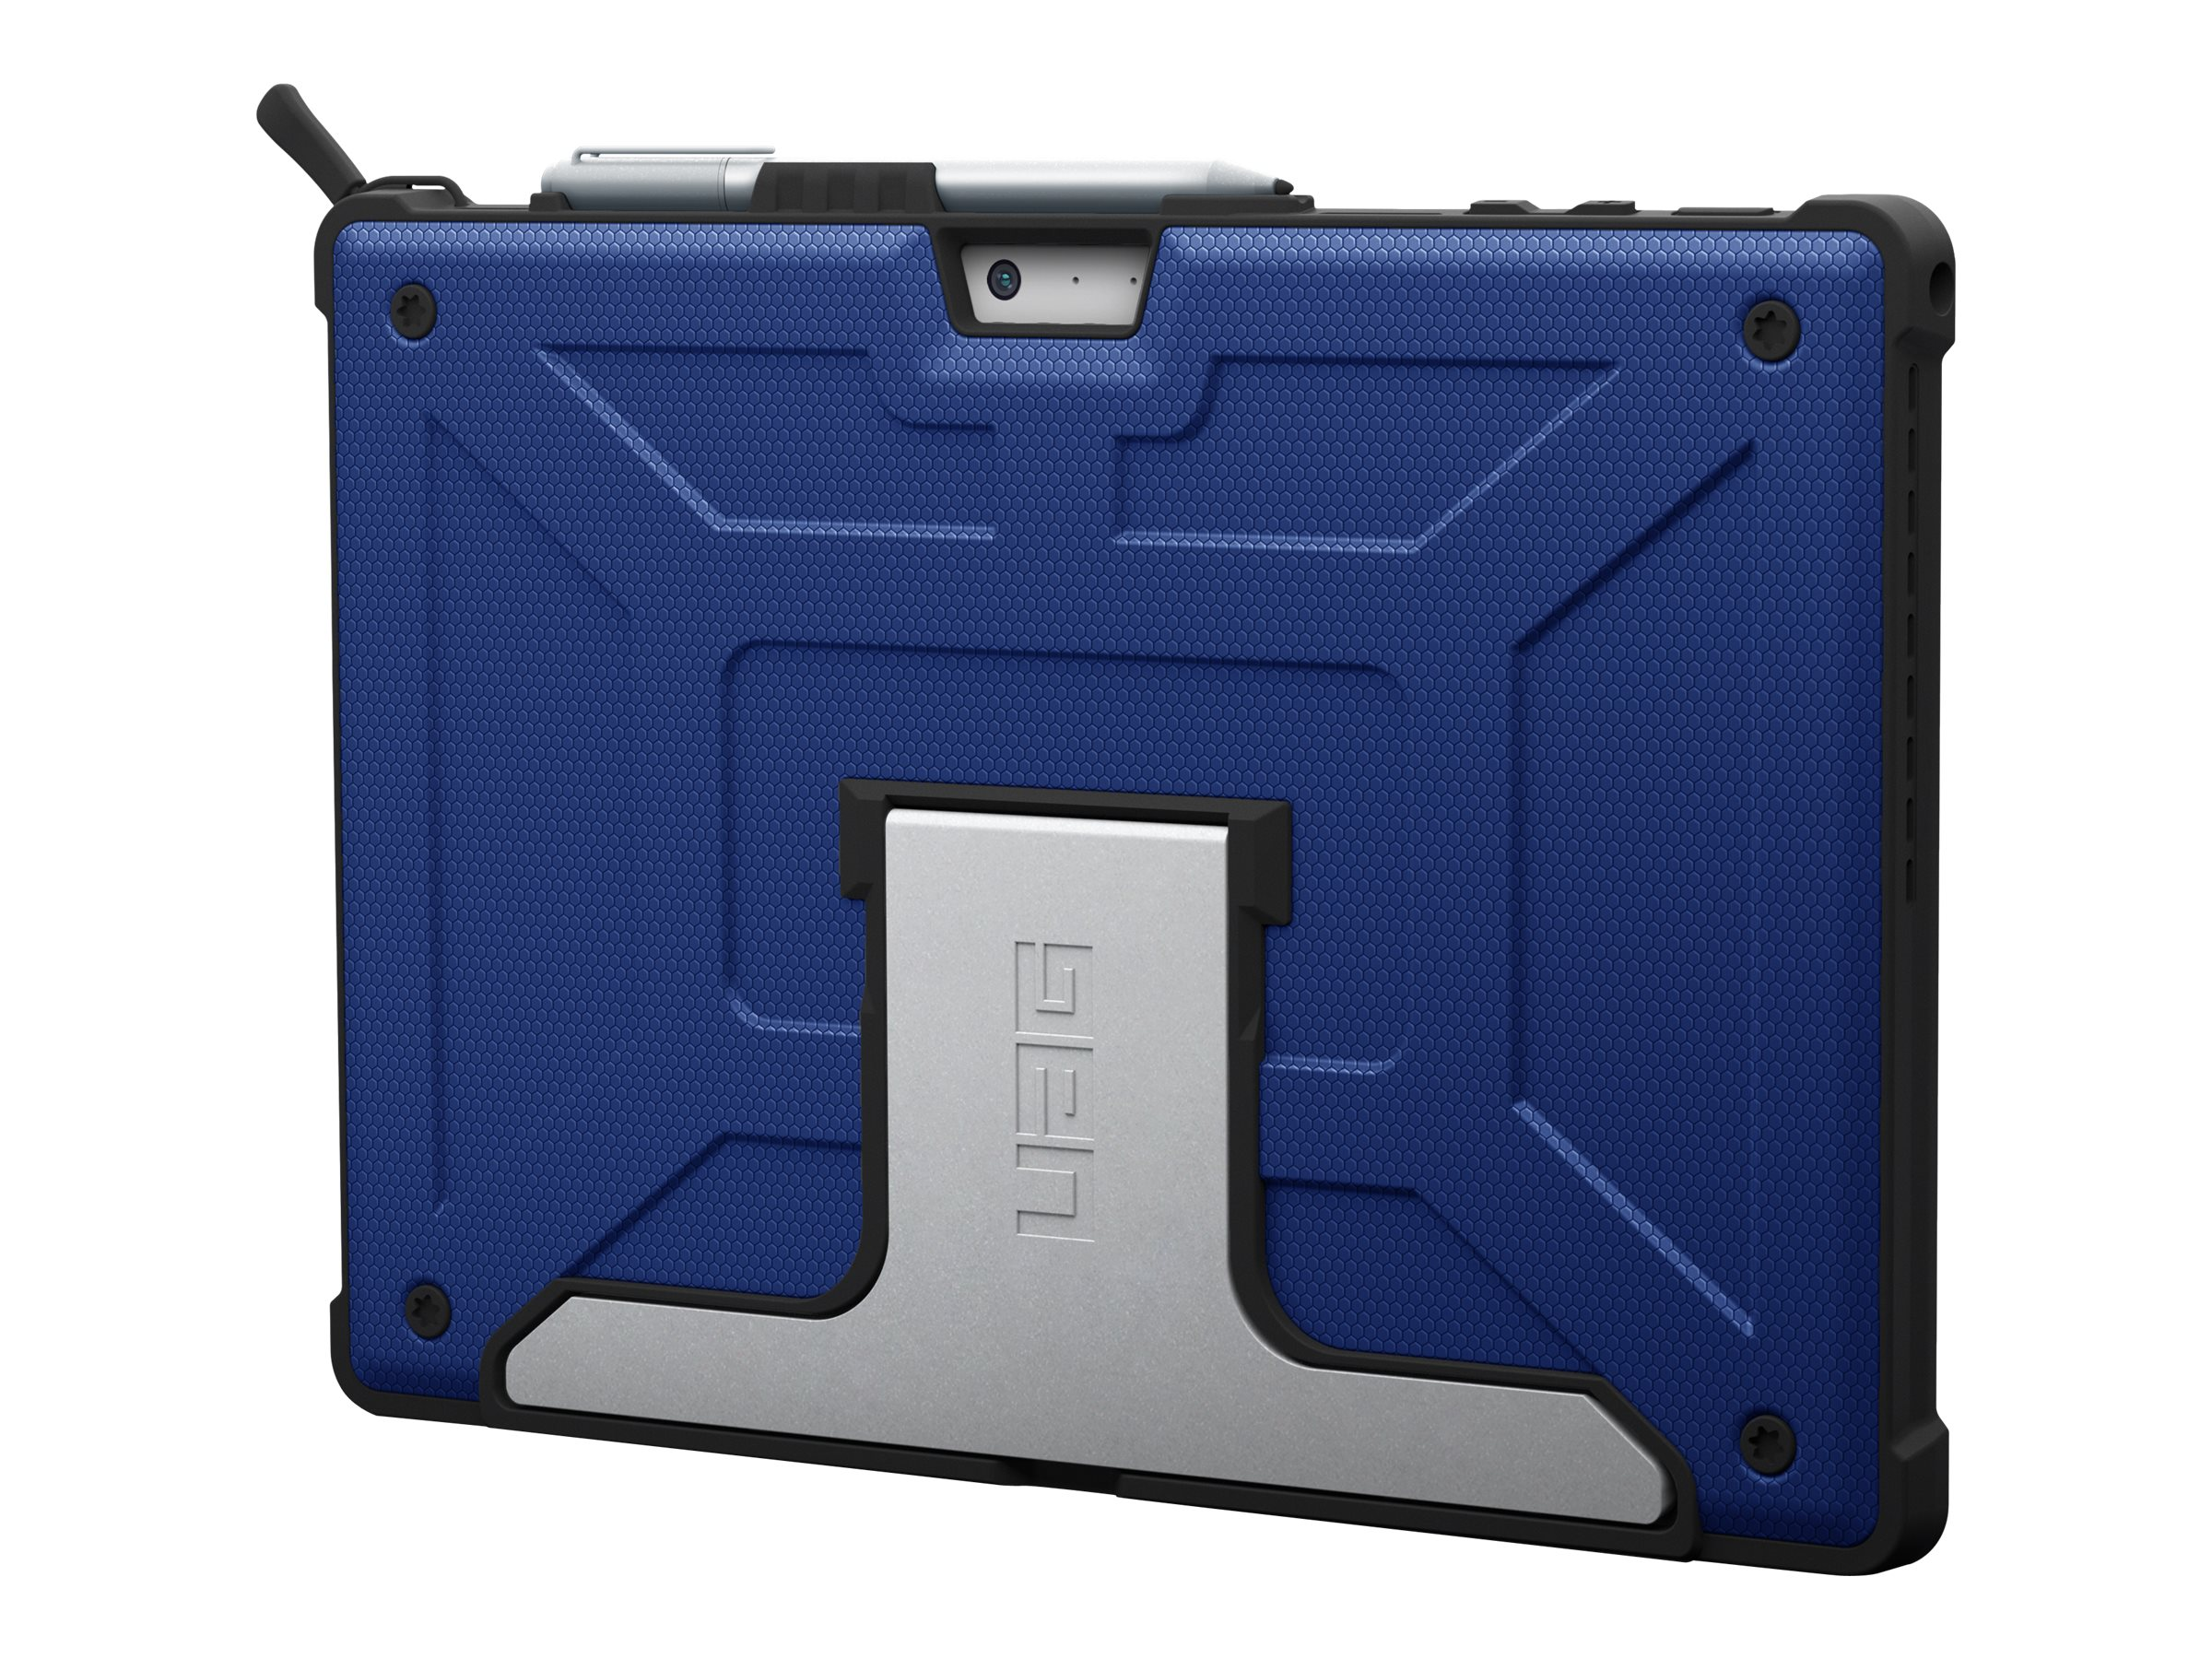 UAG Rugged Case for Surface Pro 7+/7/6/5/LTE/4 - Metropolis Cobalt - Tasche für Tablet - Kobalt - für Microsoft Surface Pro (Mit